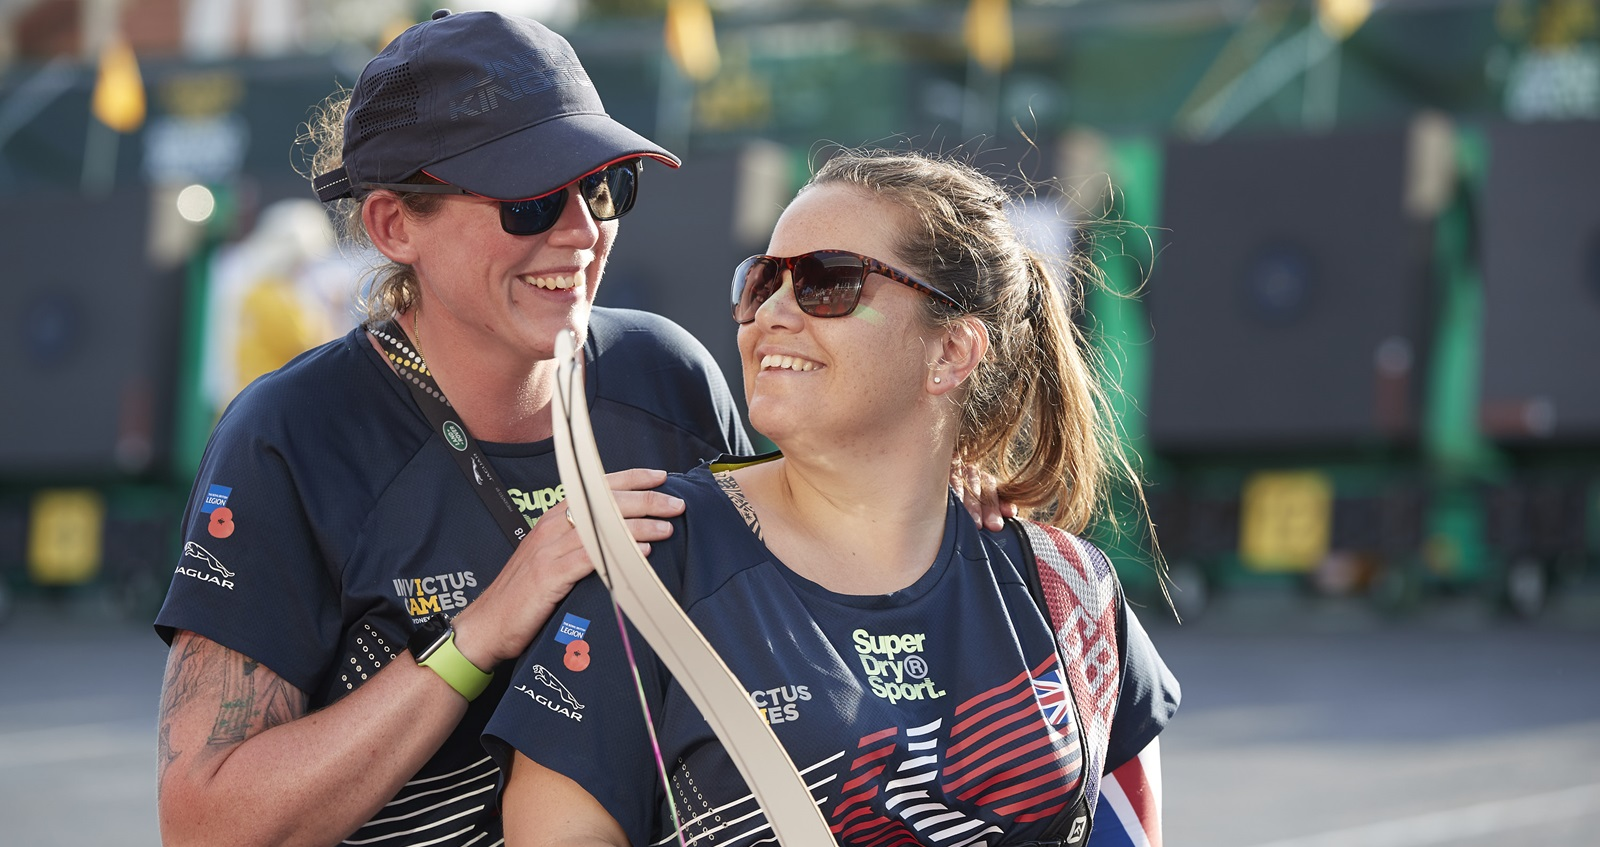 Poppy at an archery event at the Invictus Games 2018